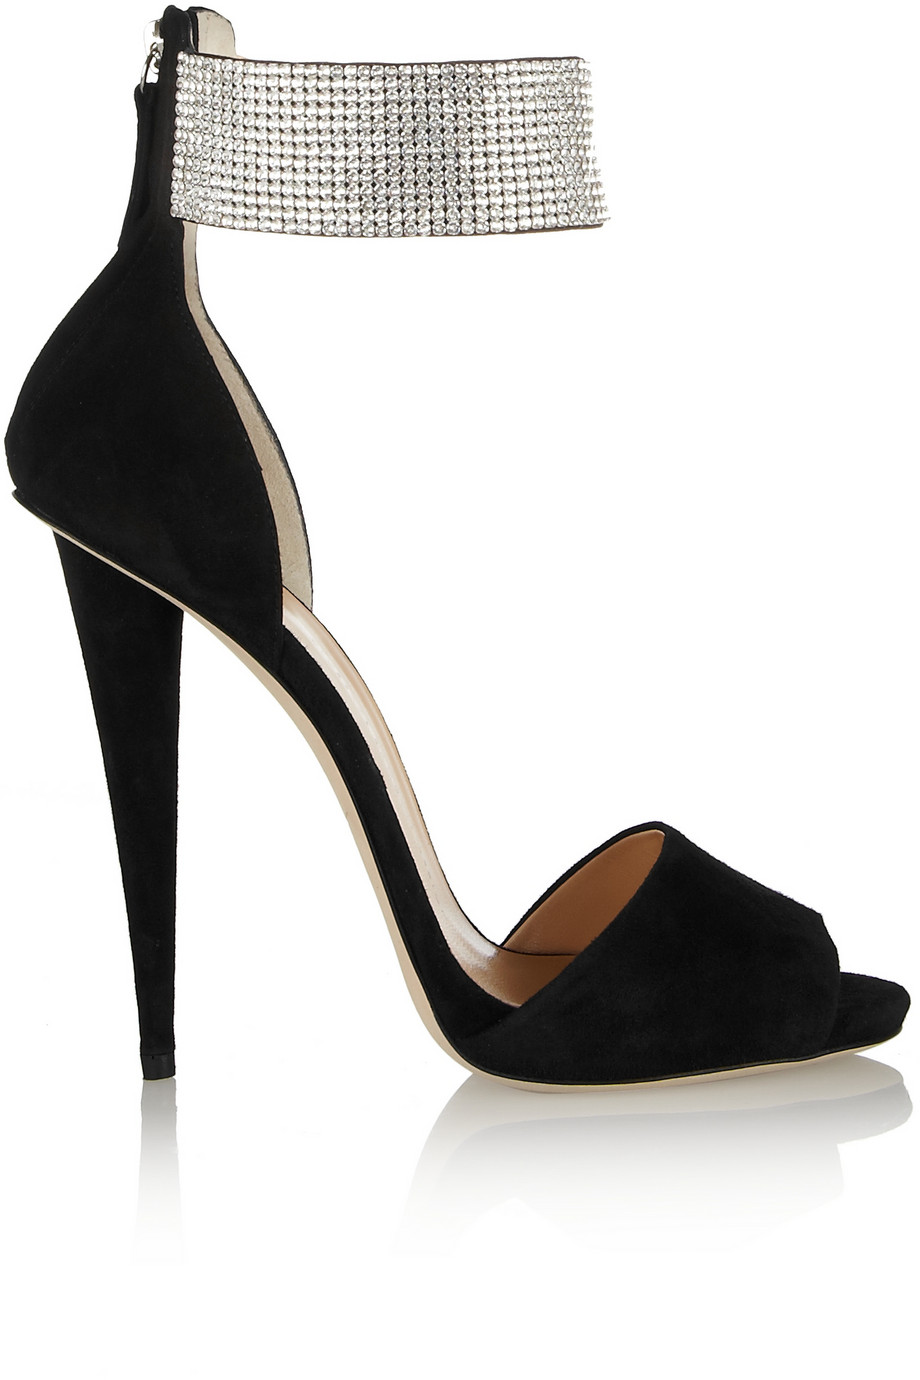 107a480bc720 Giuseppe Zanotti Alien Crystal-Embellished Suede Sandals in Black - Lyst